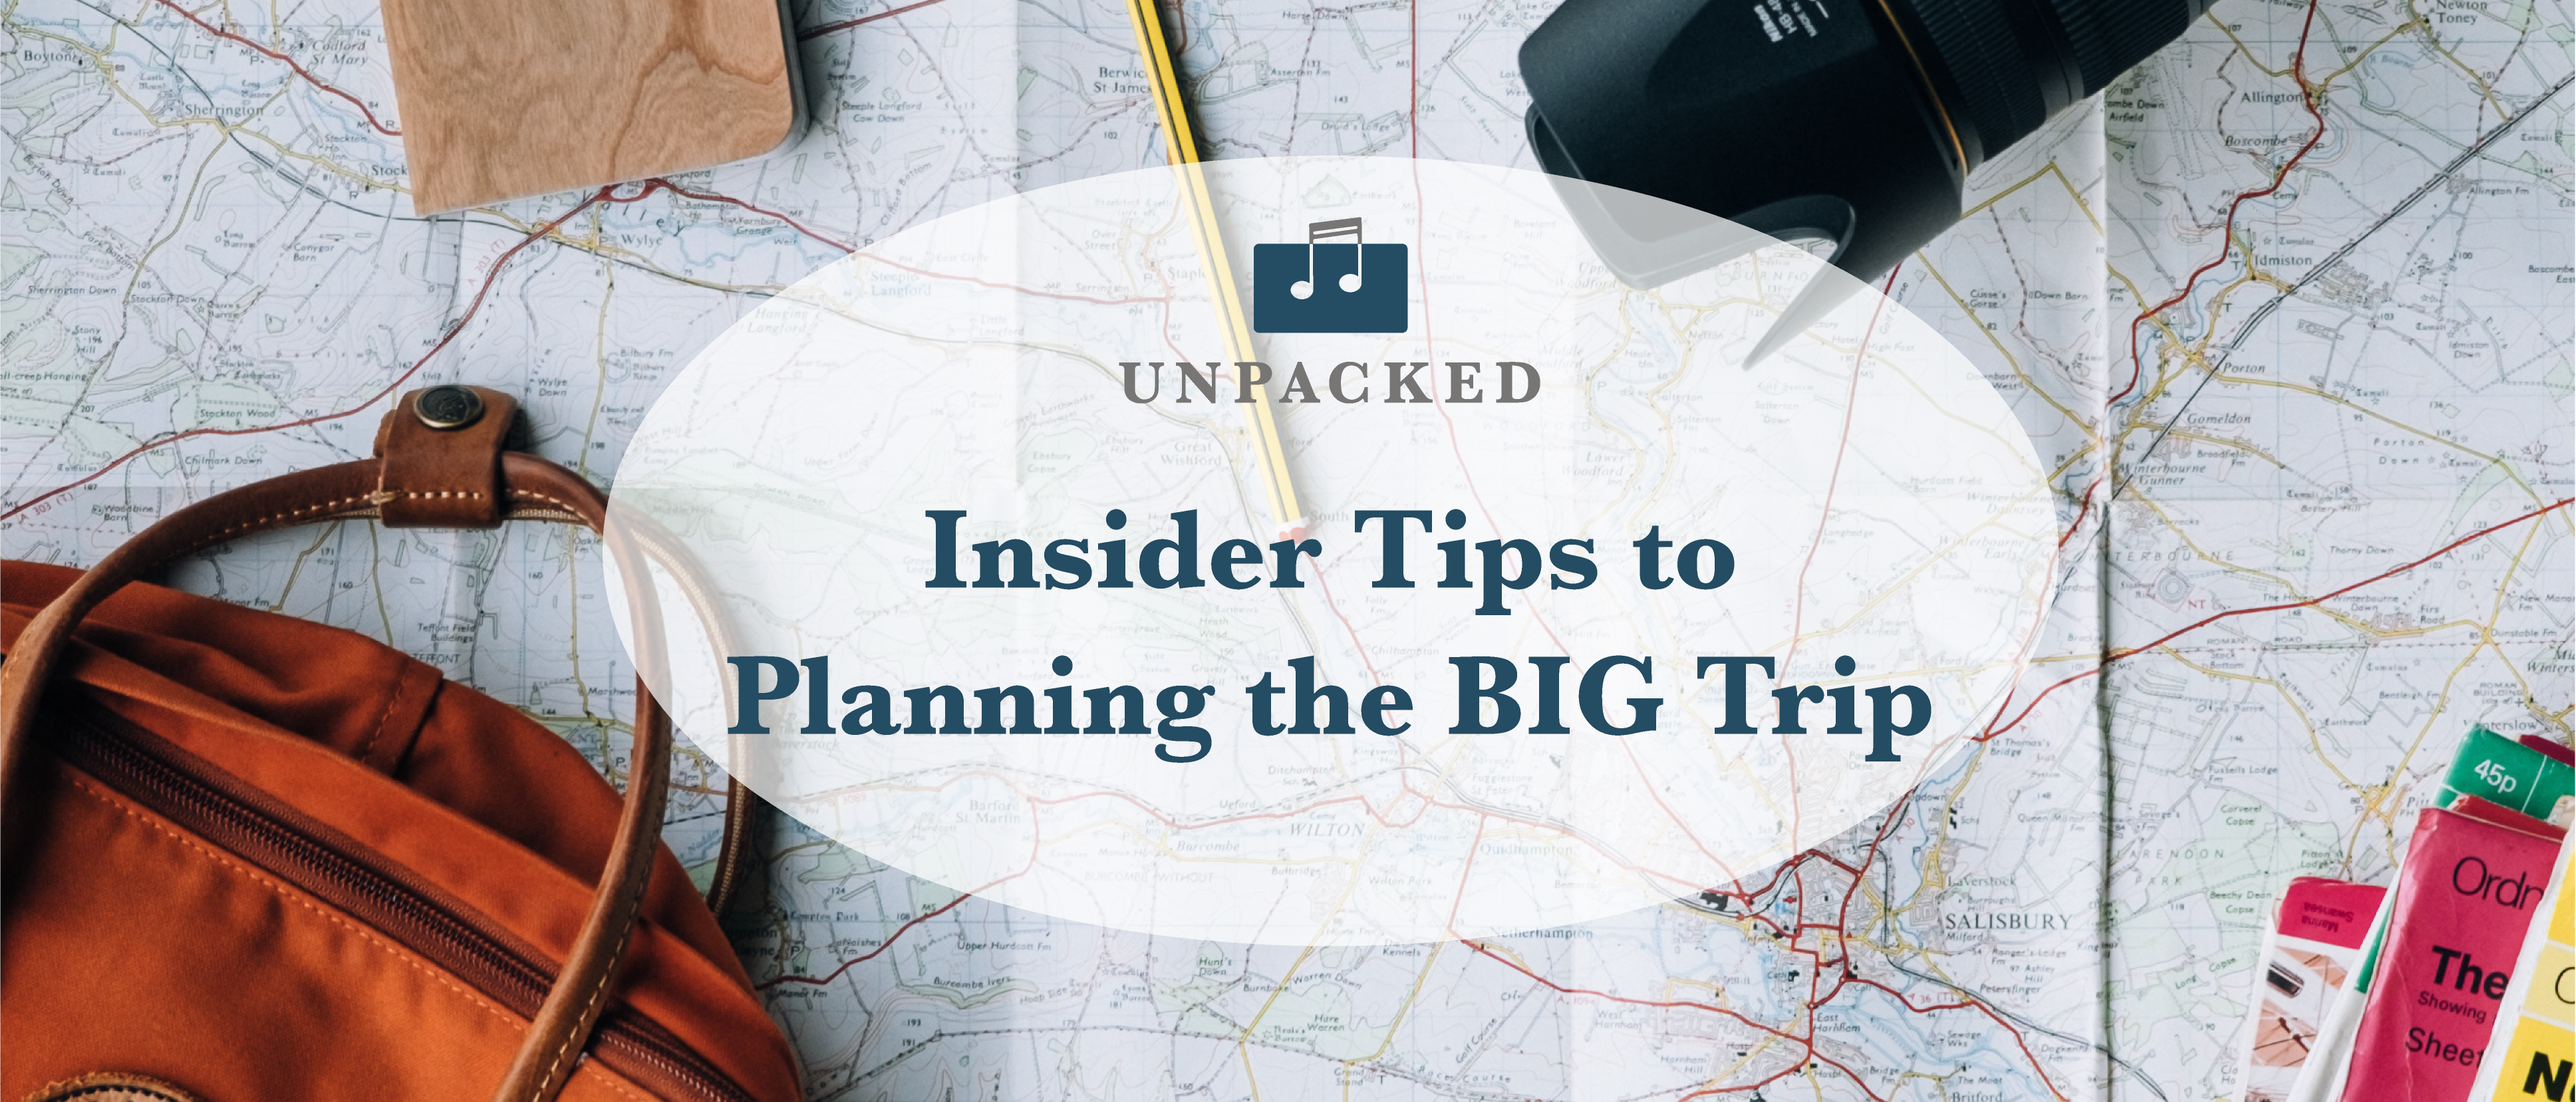 Insider Tips to Planning the BIG Trip